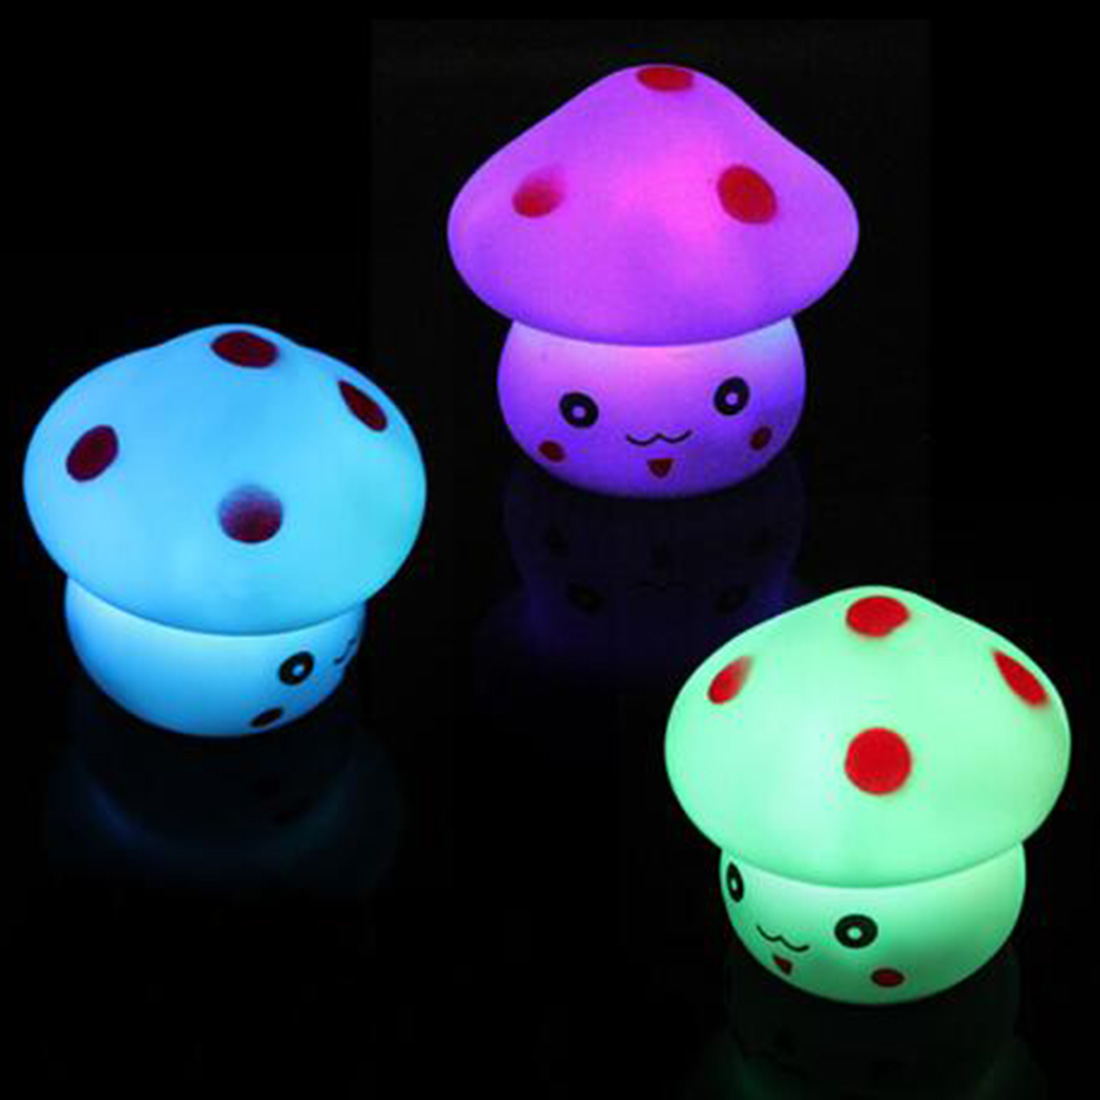 New 1pc LED Night Light Colorful Mushroom Press Down Touch Room Desk Bedside Lamp For Baby Kids Christmas Gifts Interior Design